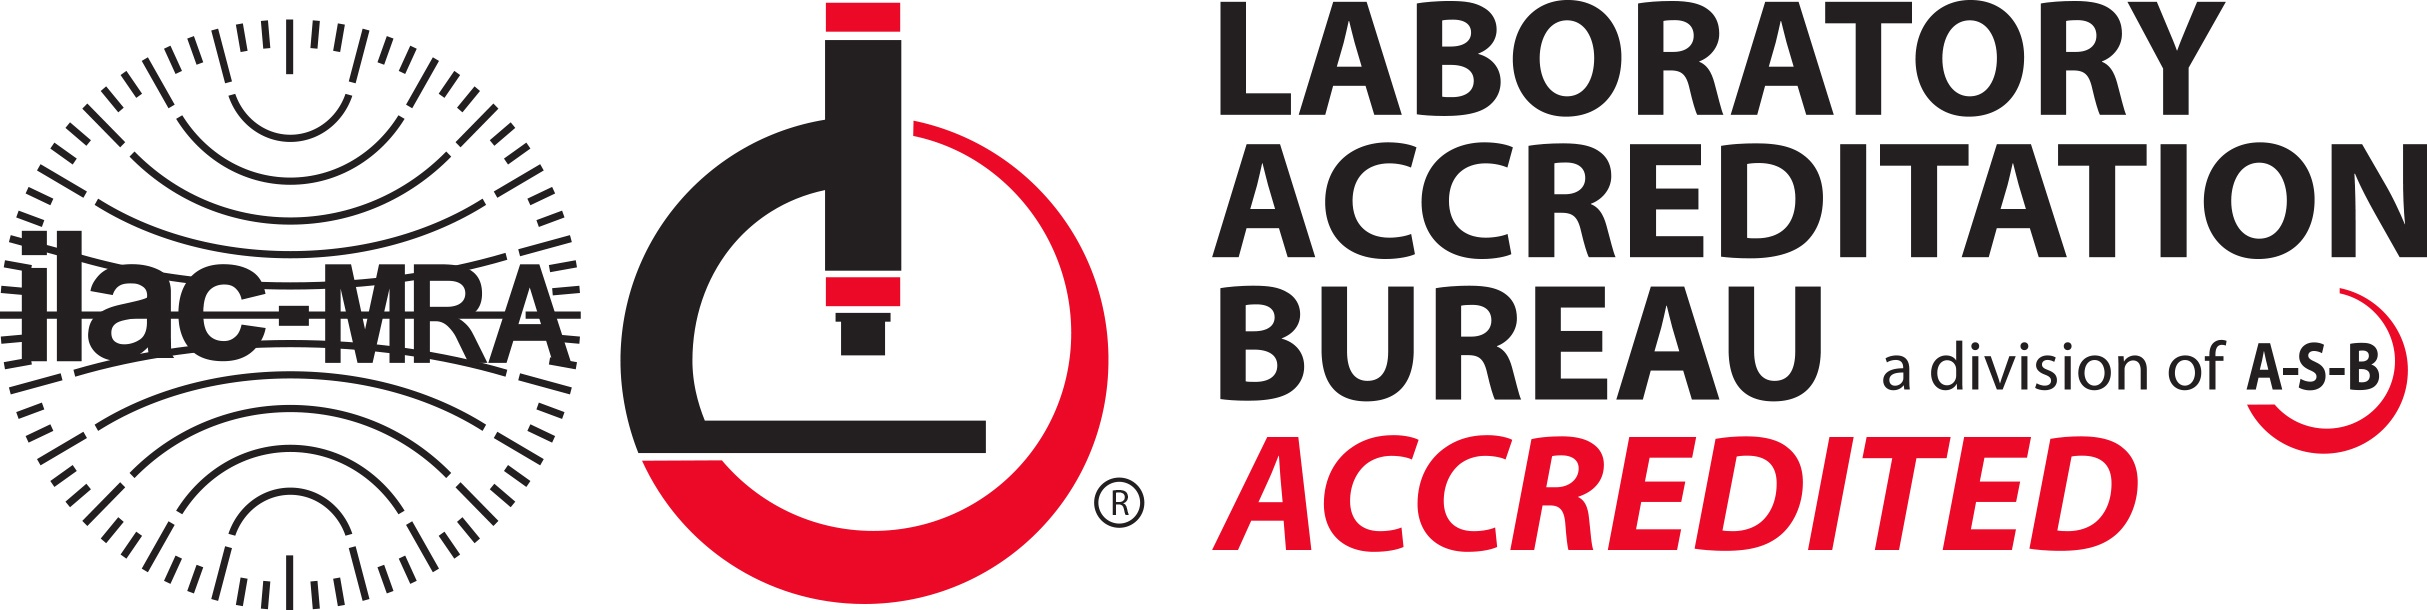 L-A-B_Accredited_-_Combo_with_ILAC_-_without_17025_-_Large.jpg